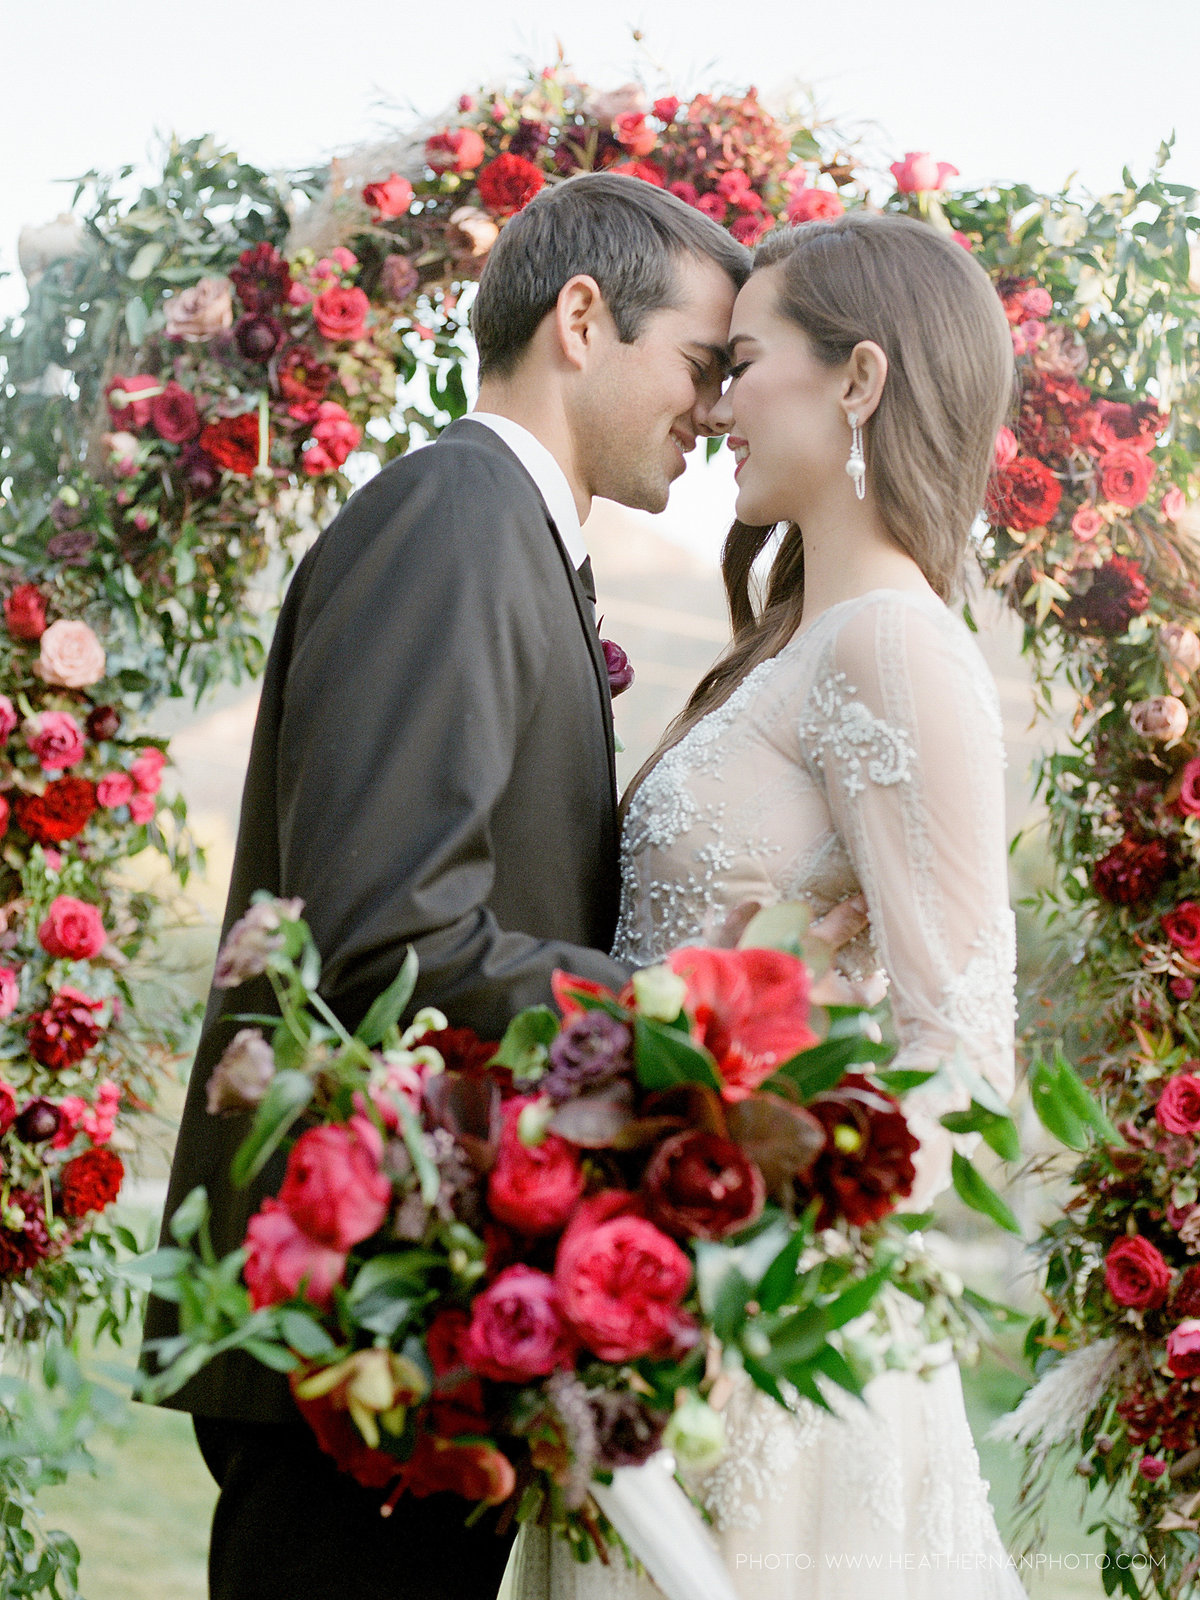 Utah Florist_Romantic Vineyard Wedding_Red Wedding Ideas-0147